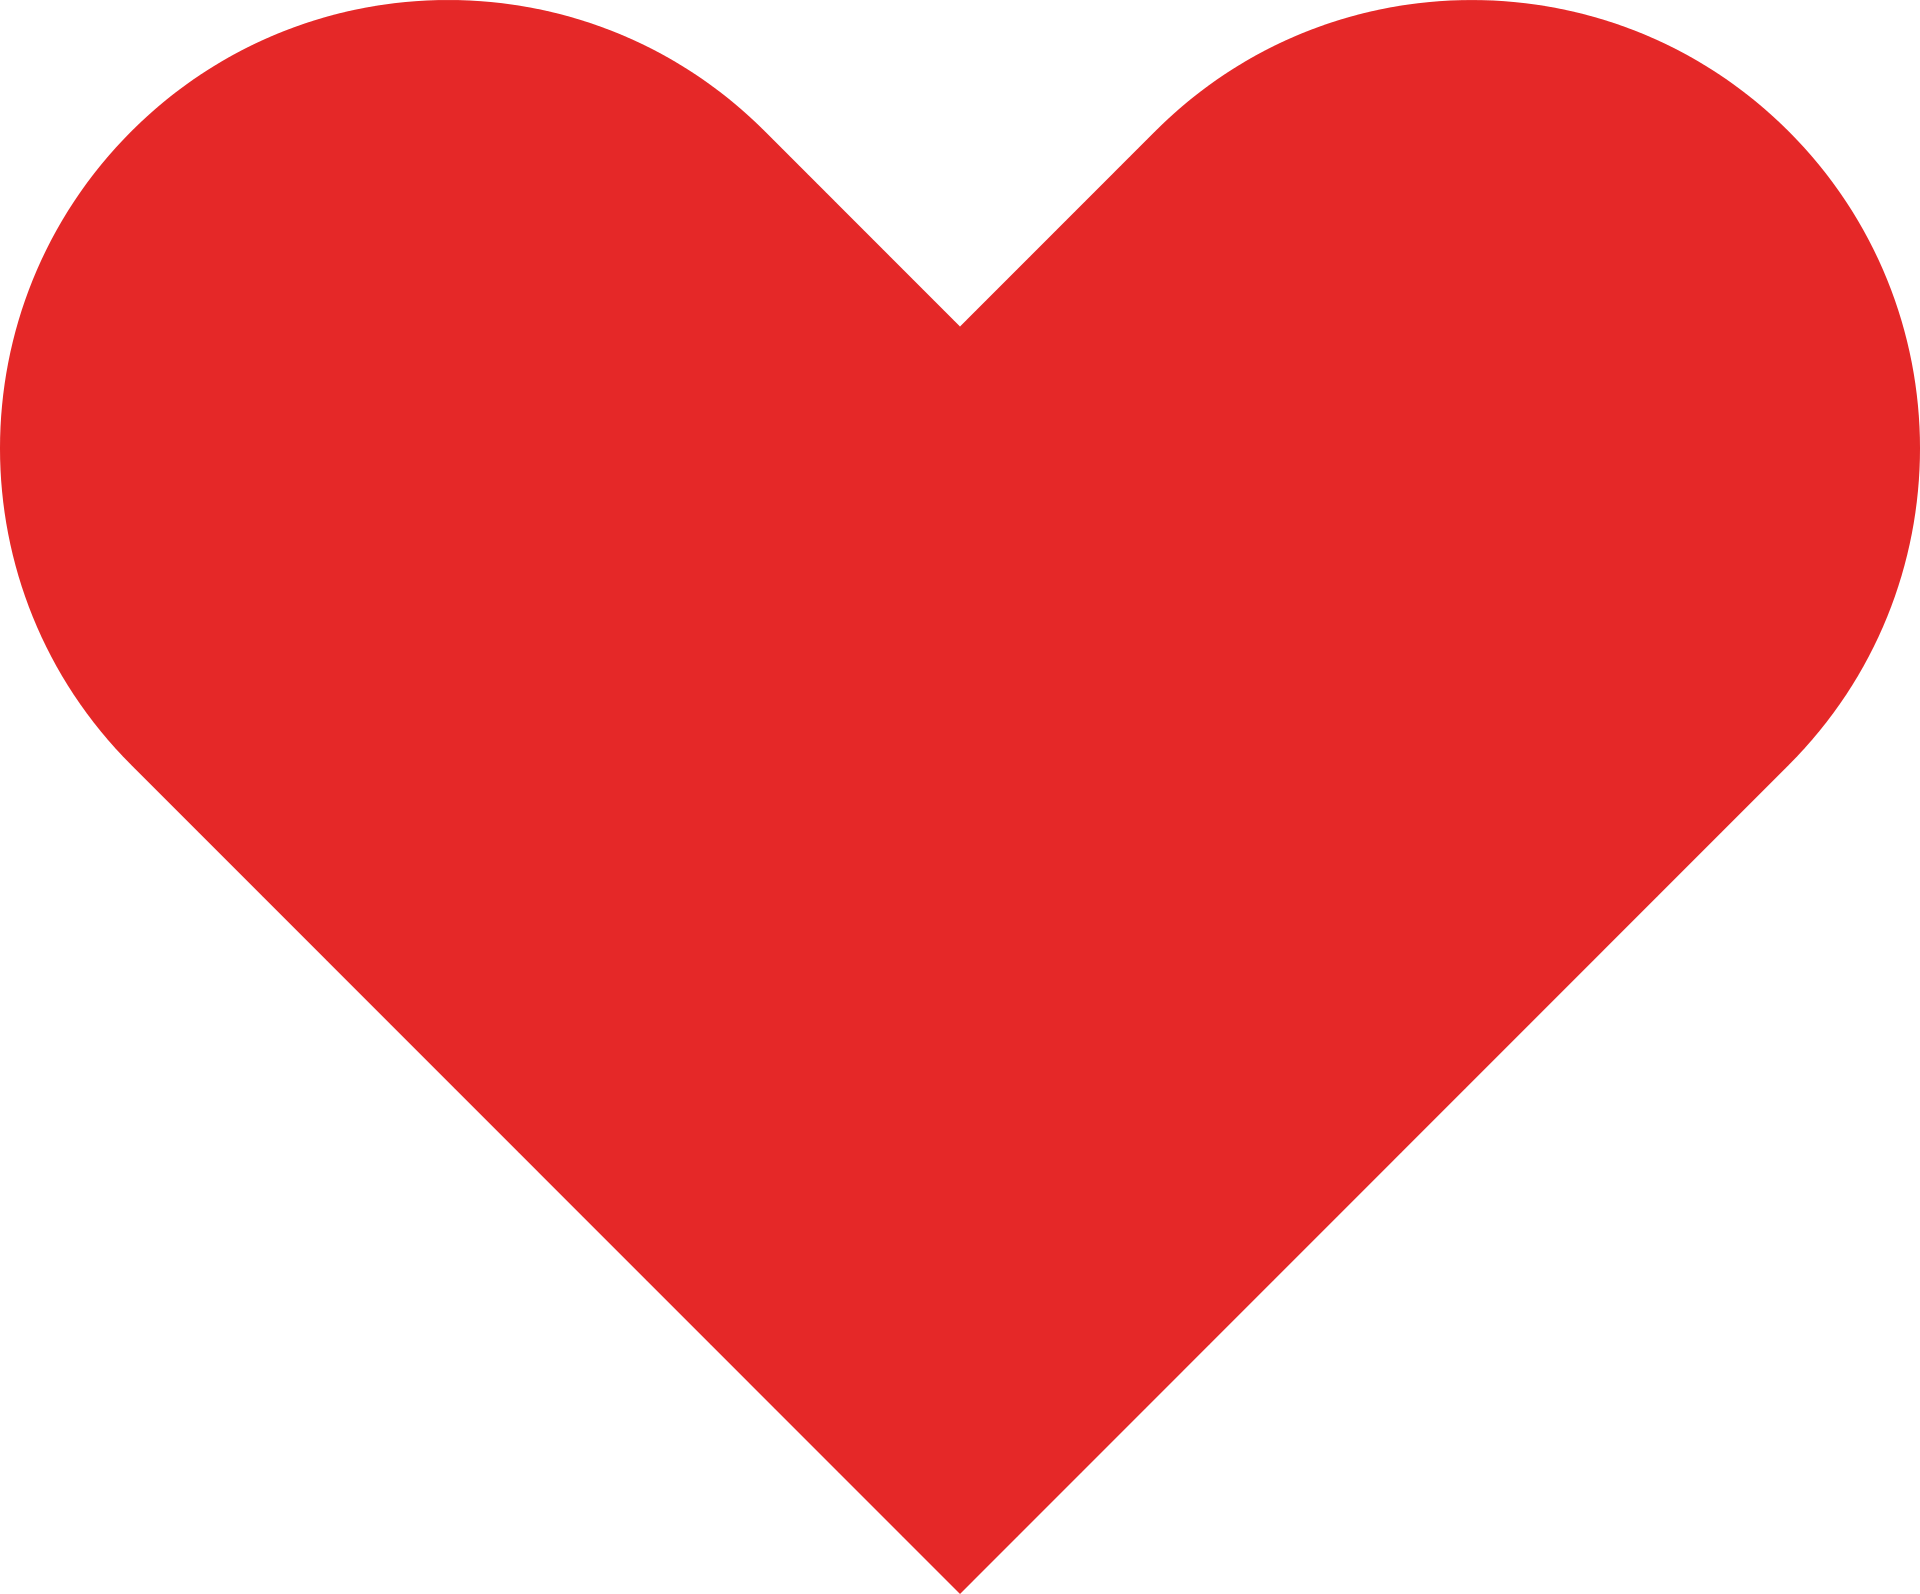 File:Symbolic Love Heart.png.